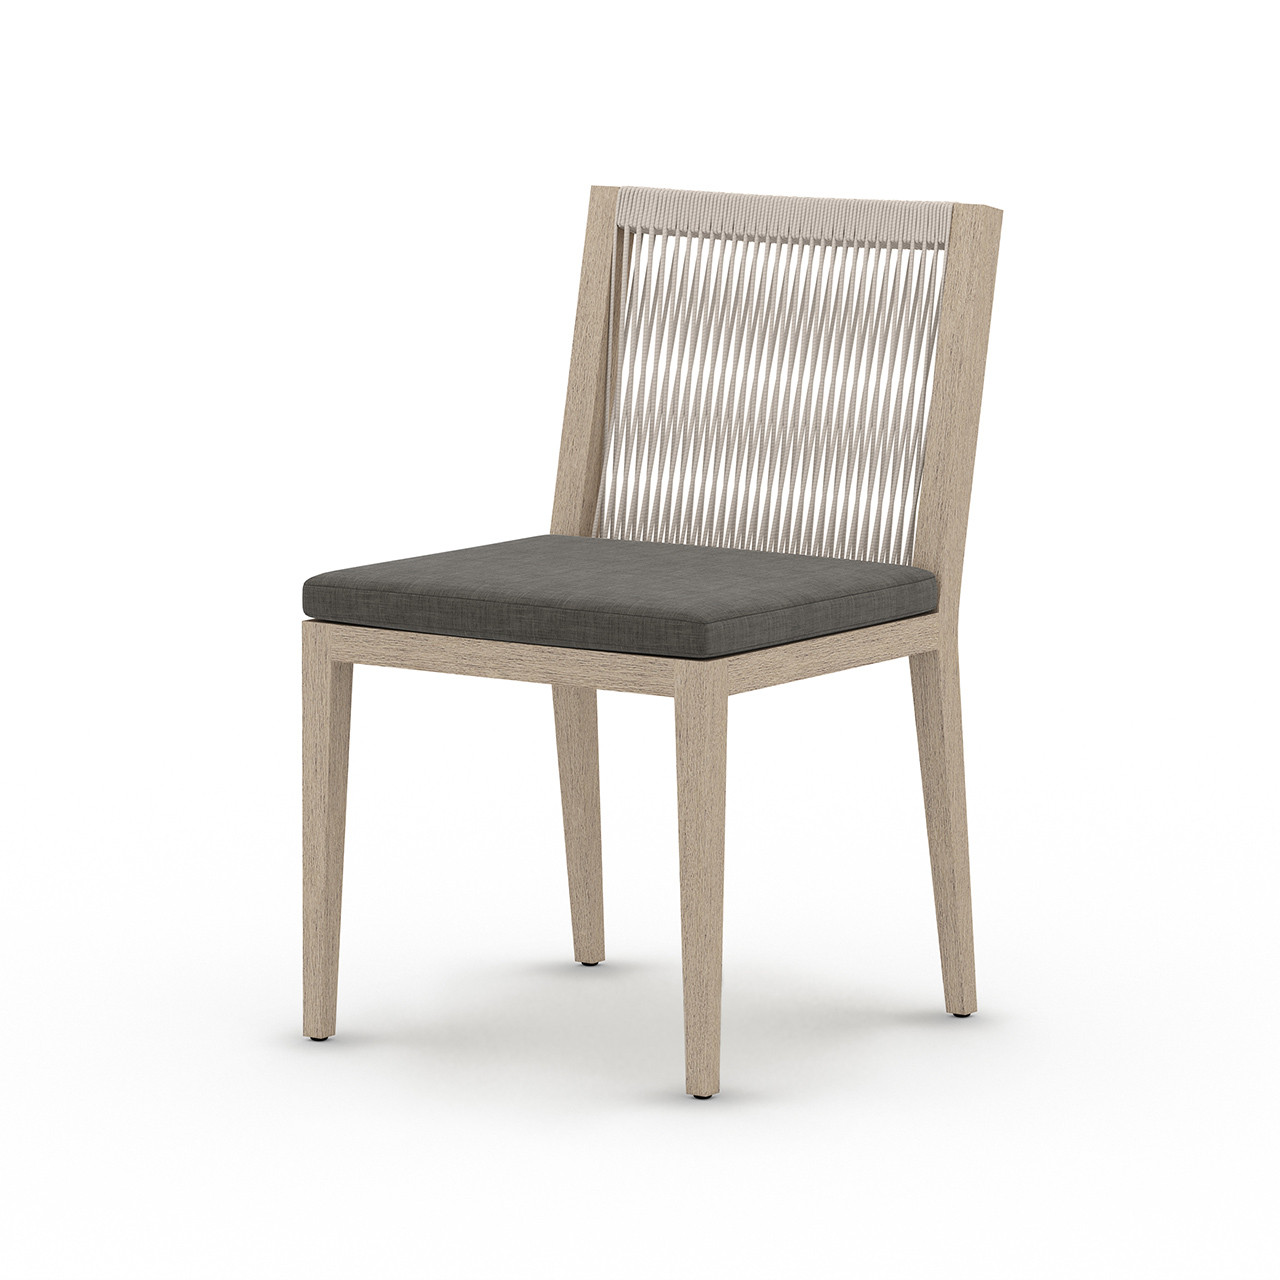 Silhouette Teak Outdoor Dining Chair